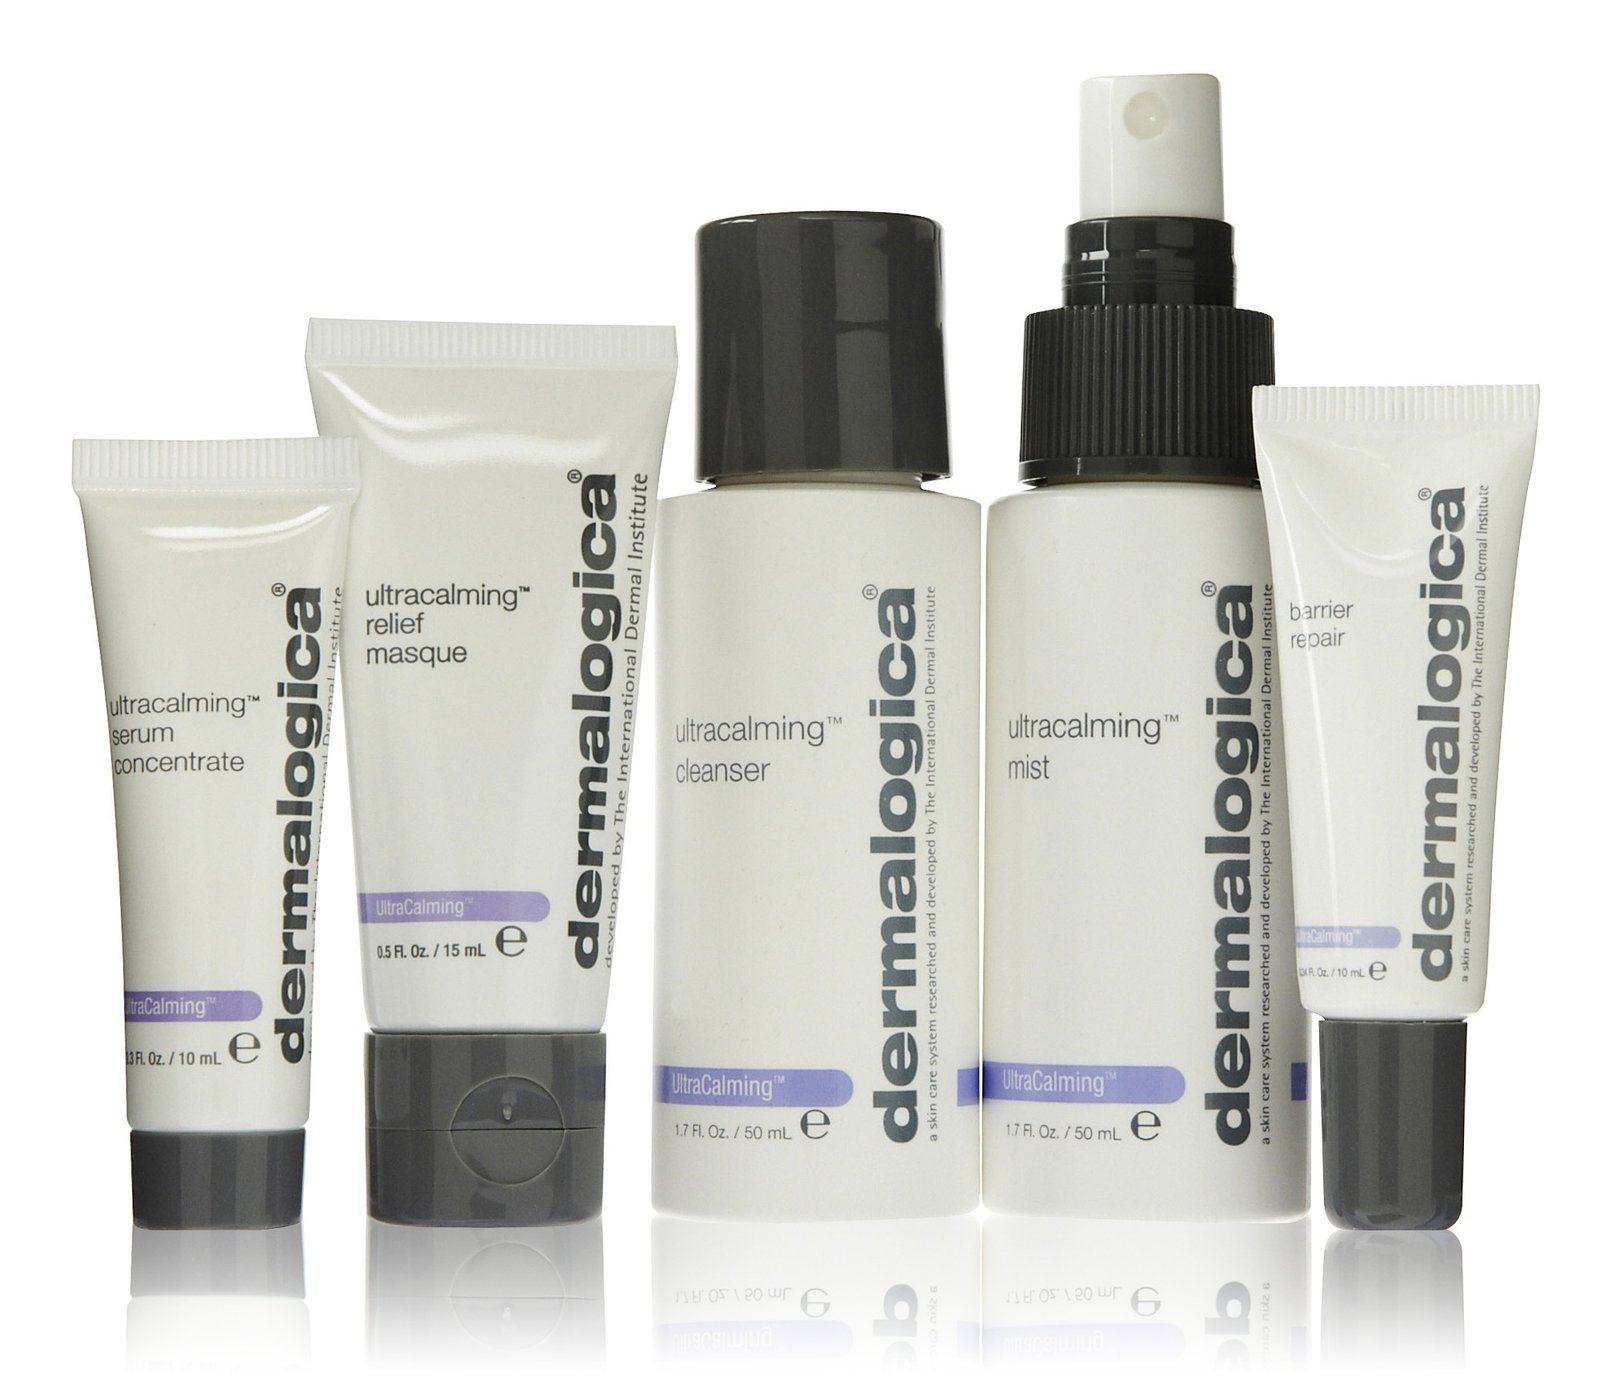 dermalogica essay Elise esthetics institute is nestled in the dermalogica skincare kit, tote an enrollment application which includes an essay of why you would like to.